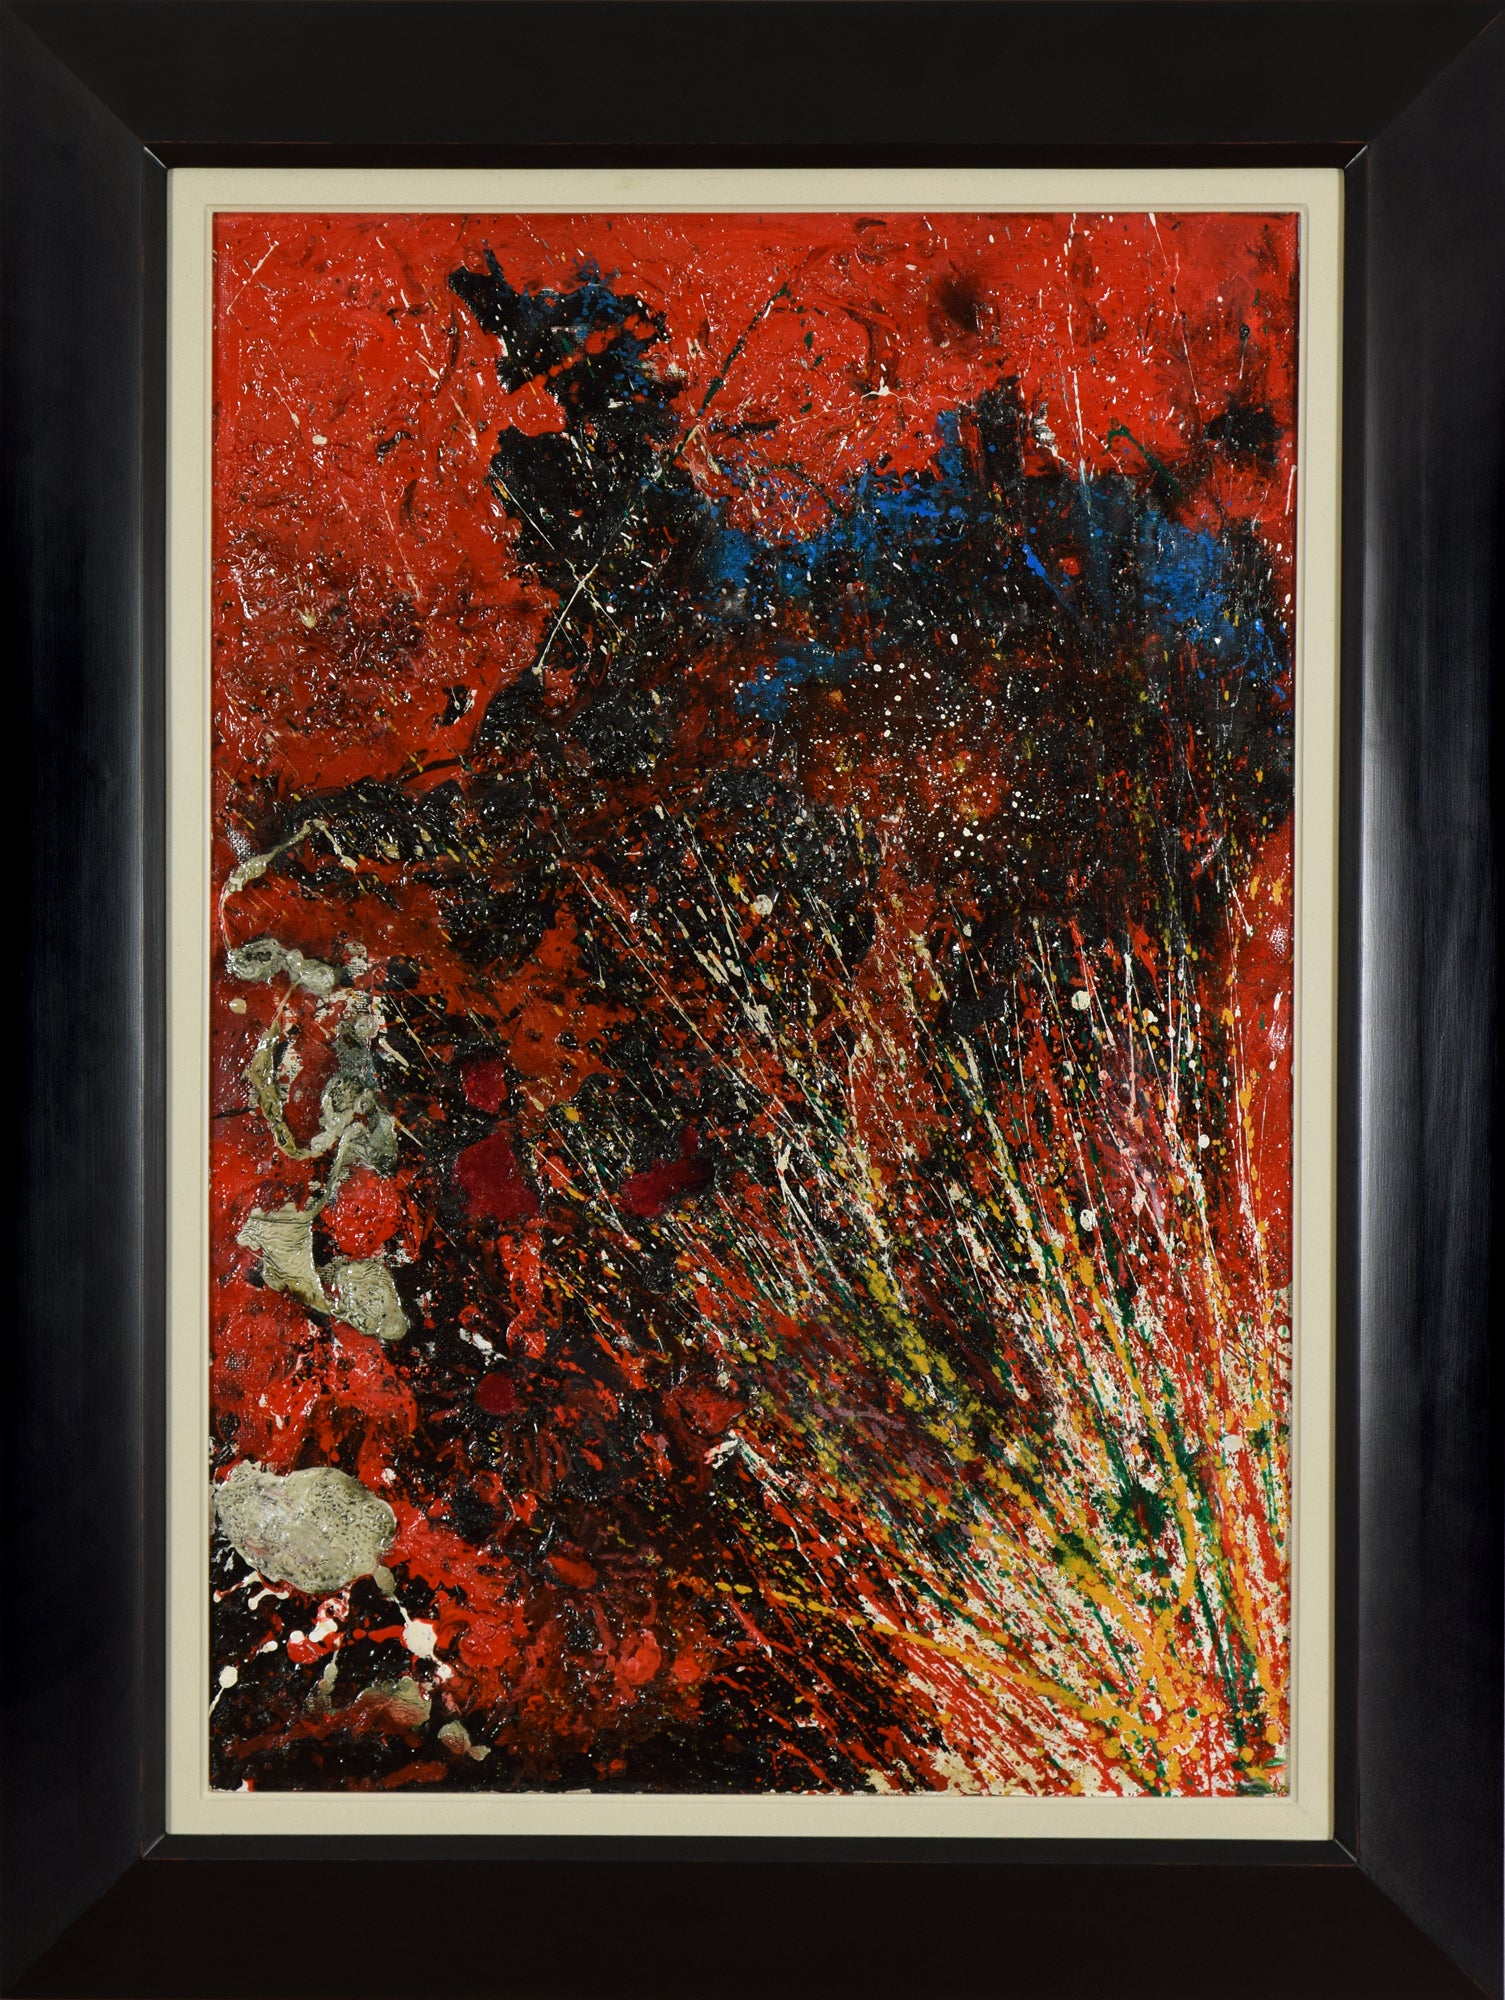 Red Composition by TOSHIMITSU ÏMAI - Contemporary, Abstract, Oil on canvas